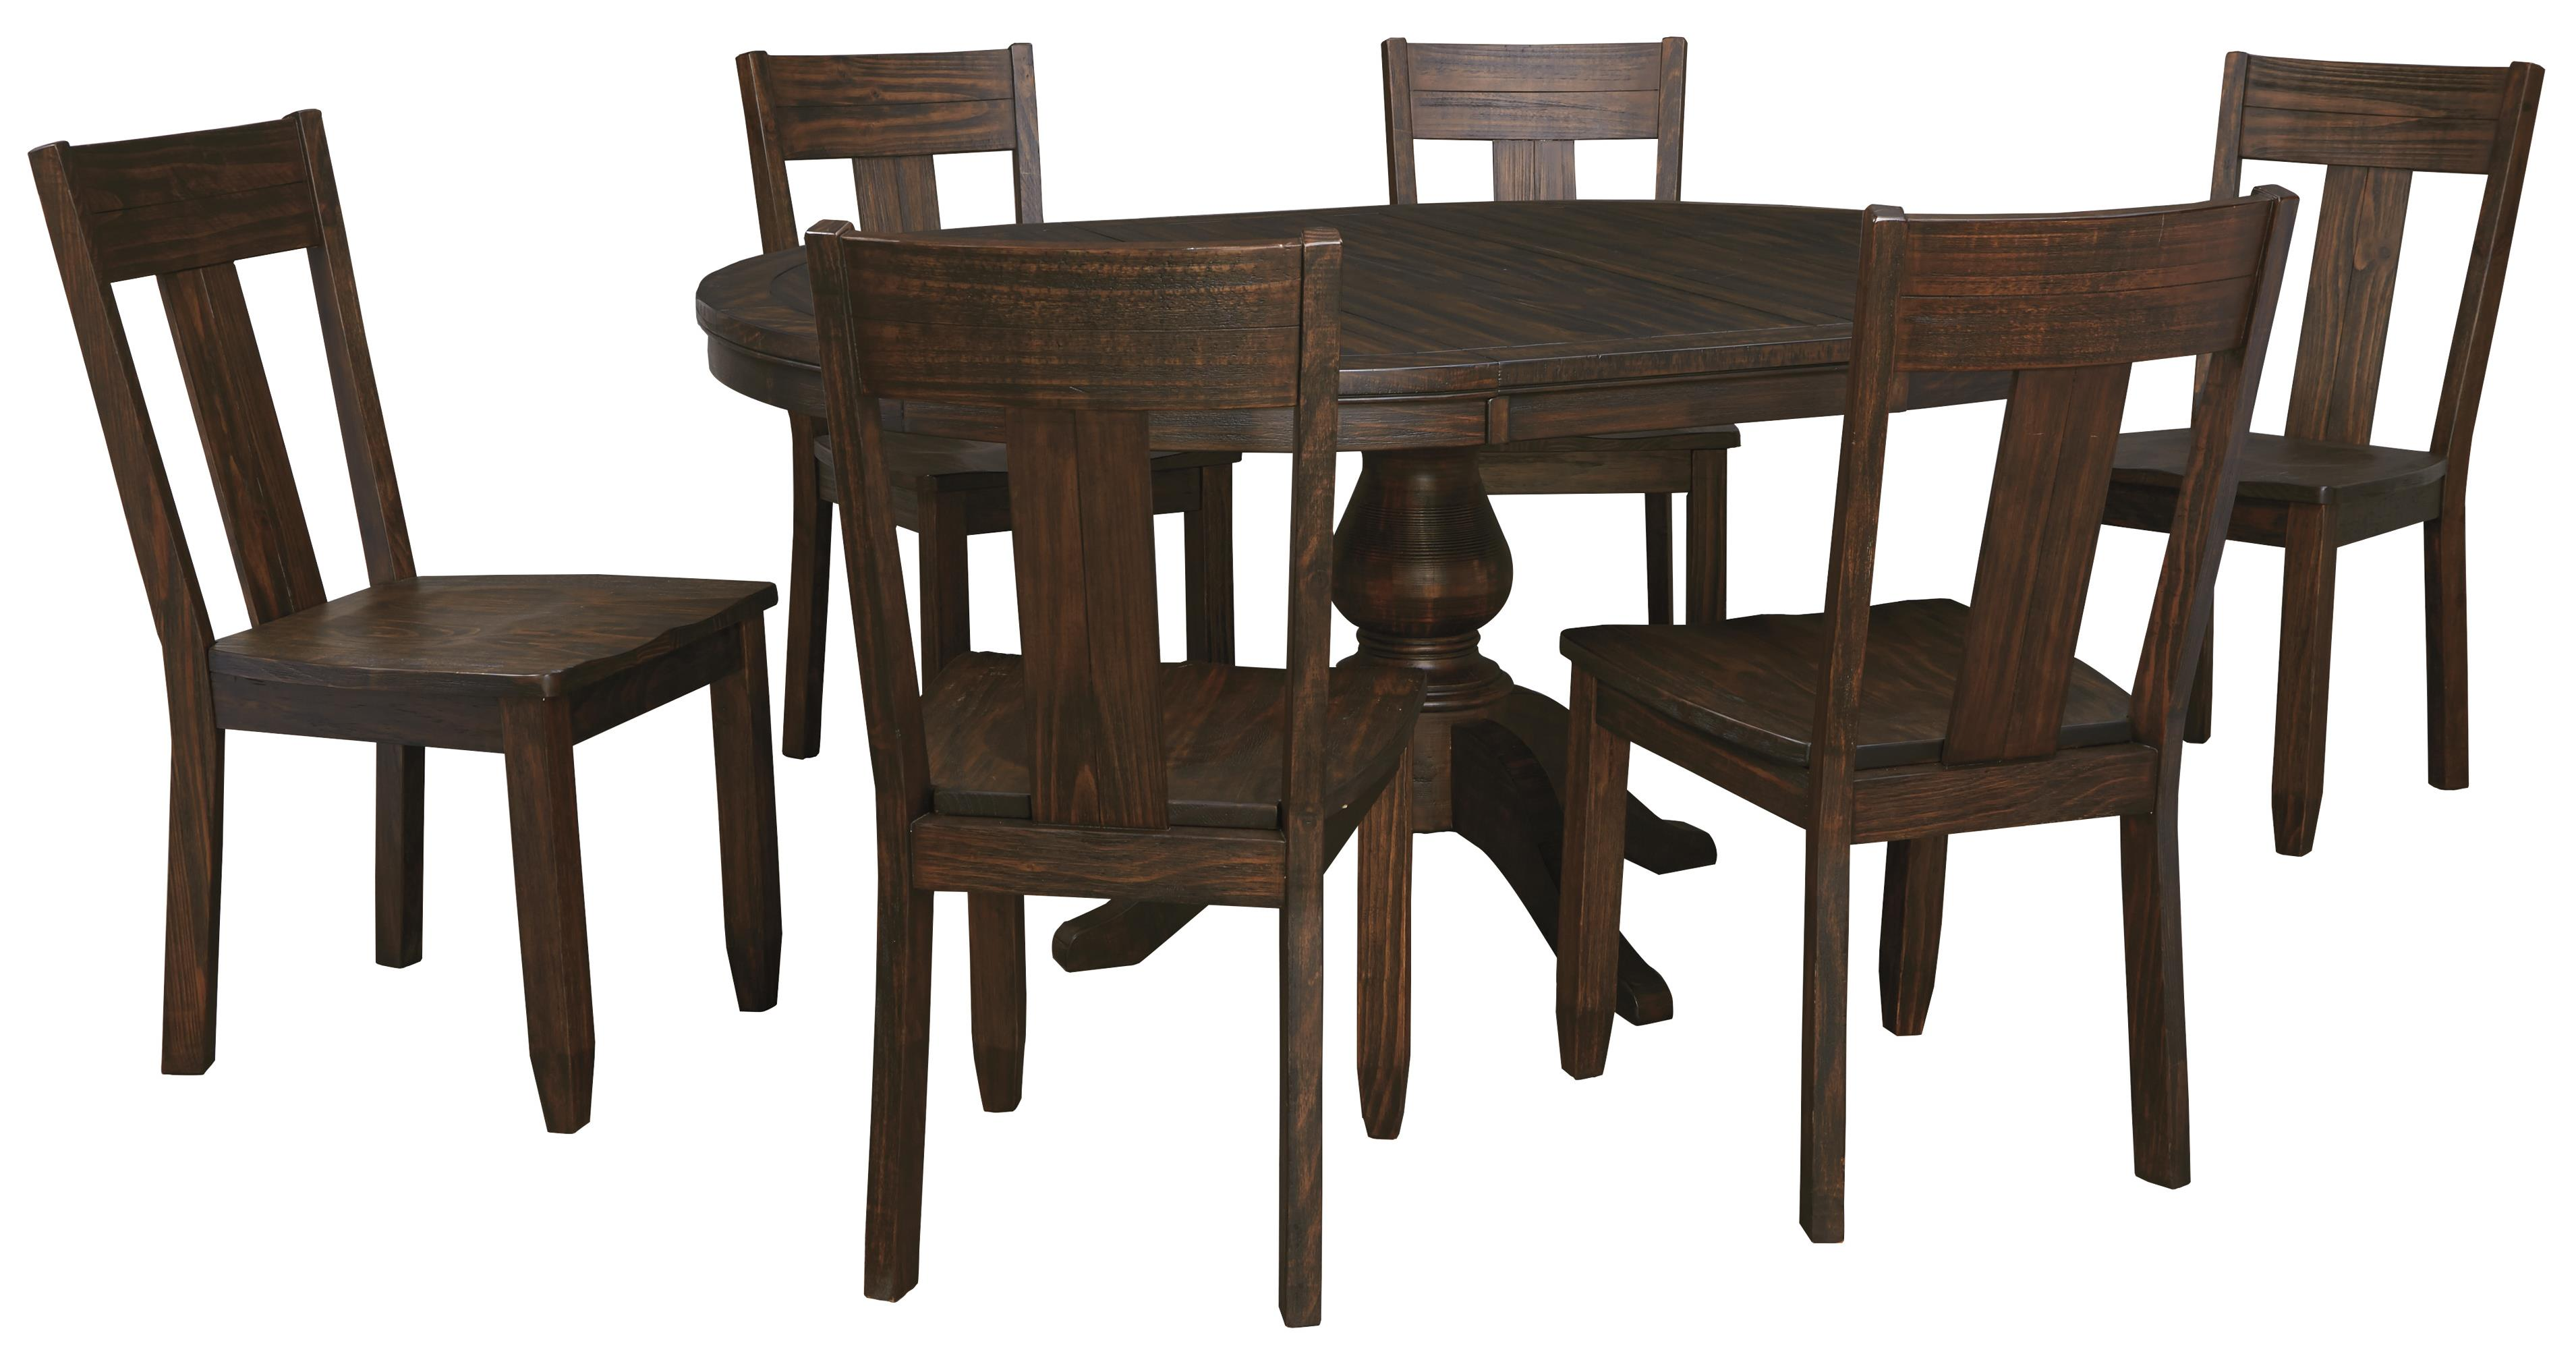 7 piece oval dining table set with wood seat side chairs for Dinette sets with bench seating